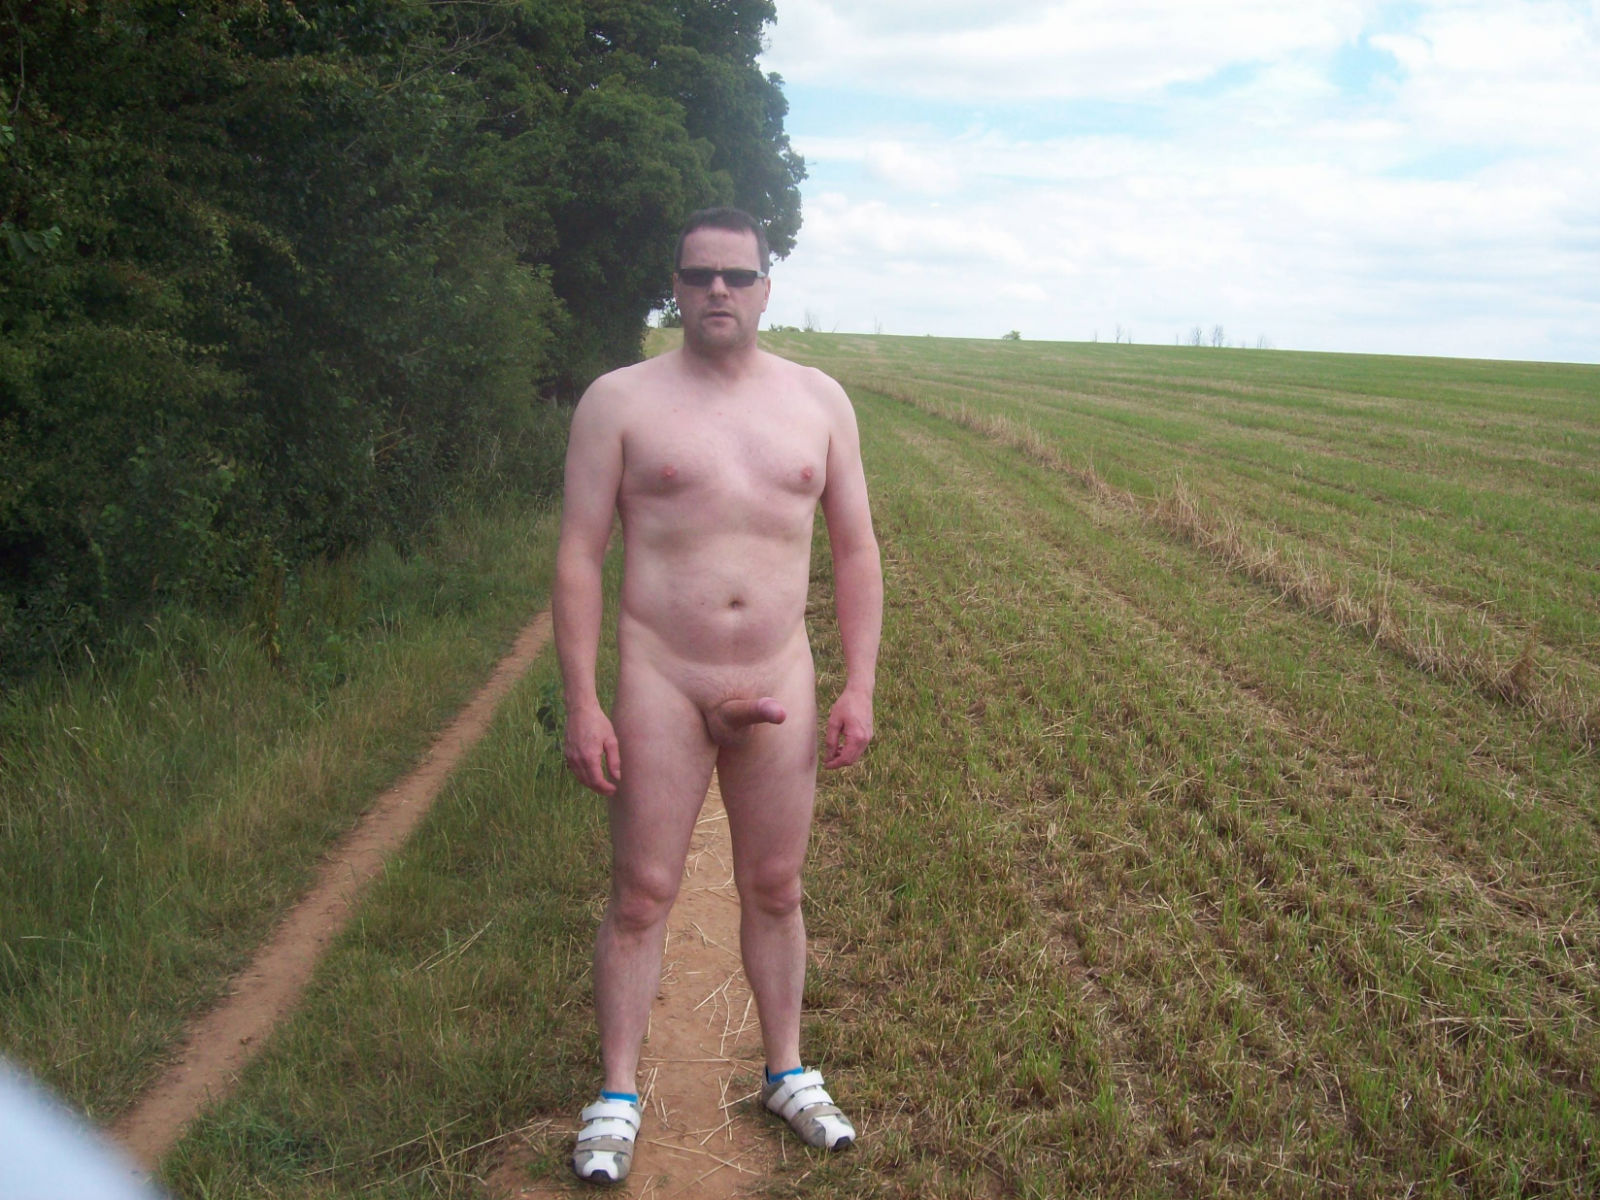 This guy just loves to get naked outside - anywhere anytime! And isn't it  great to see the results of his activities shared with us.